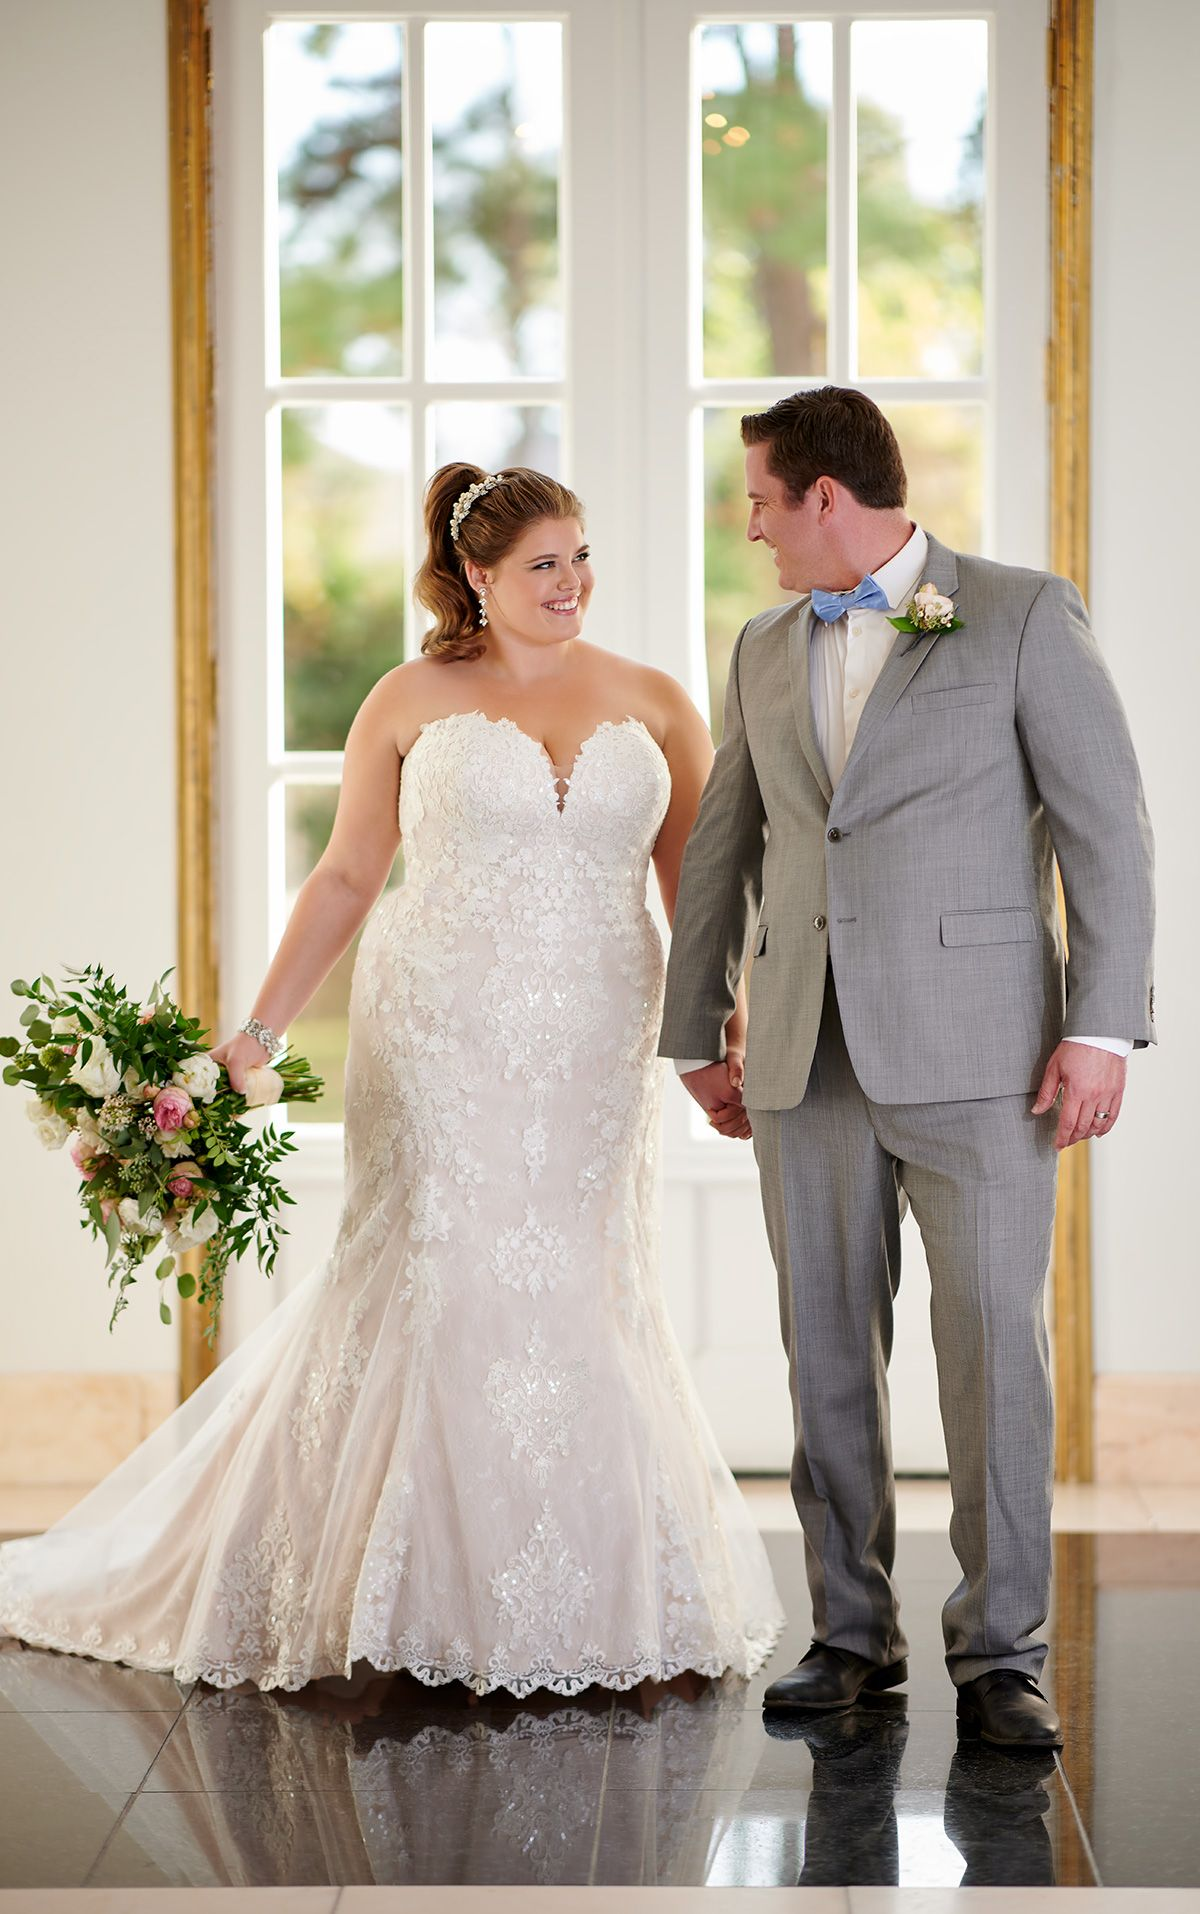 French lace plussize wedding dress with scalloped train